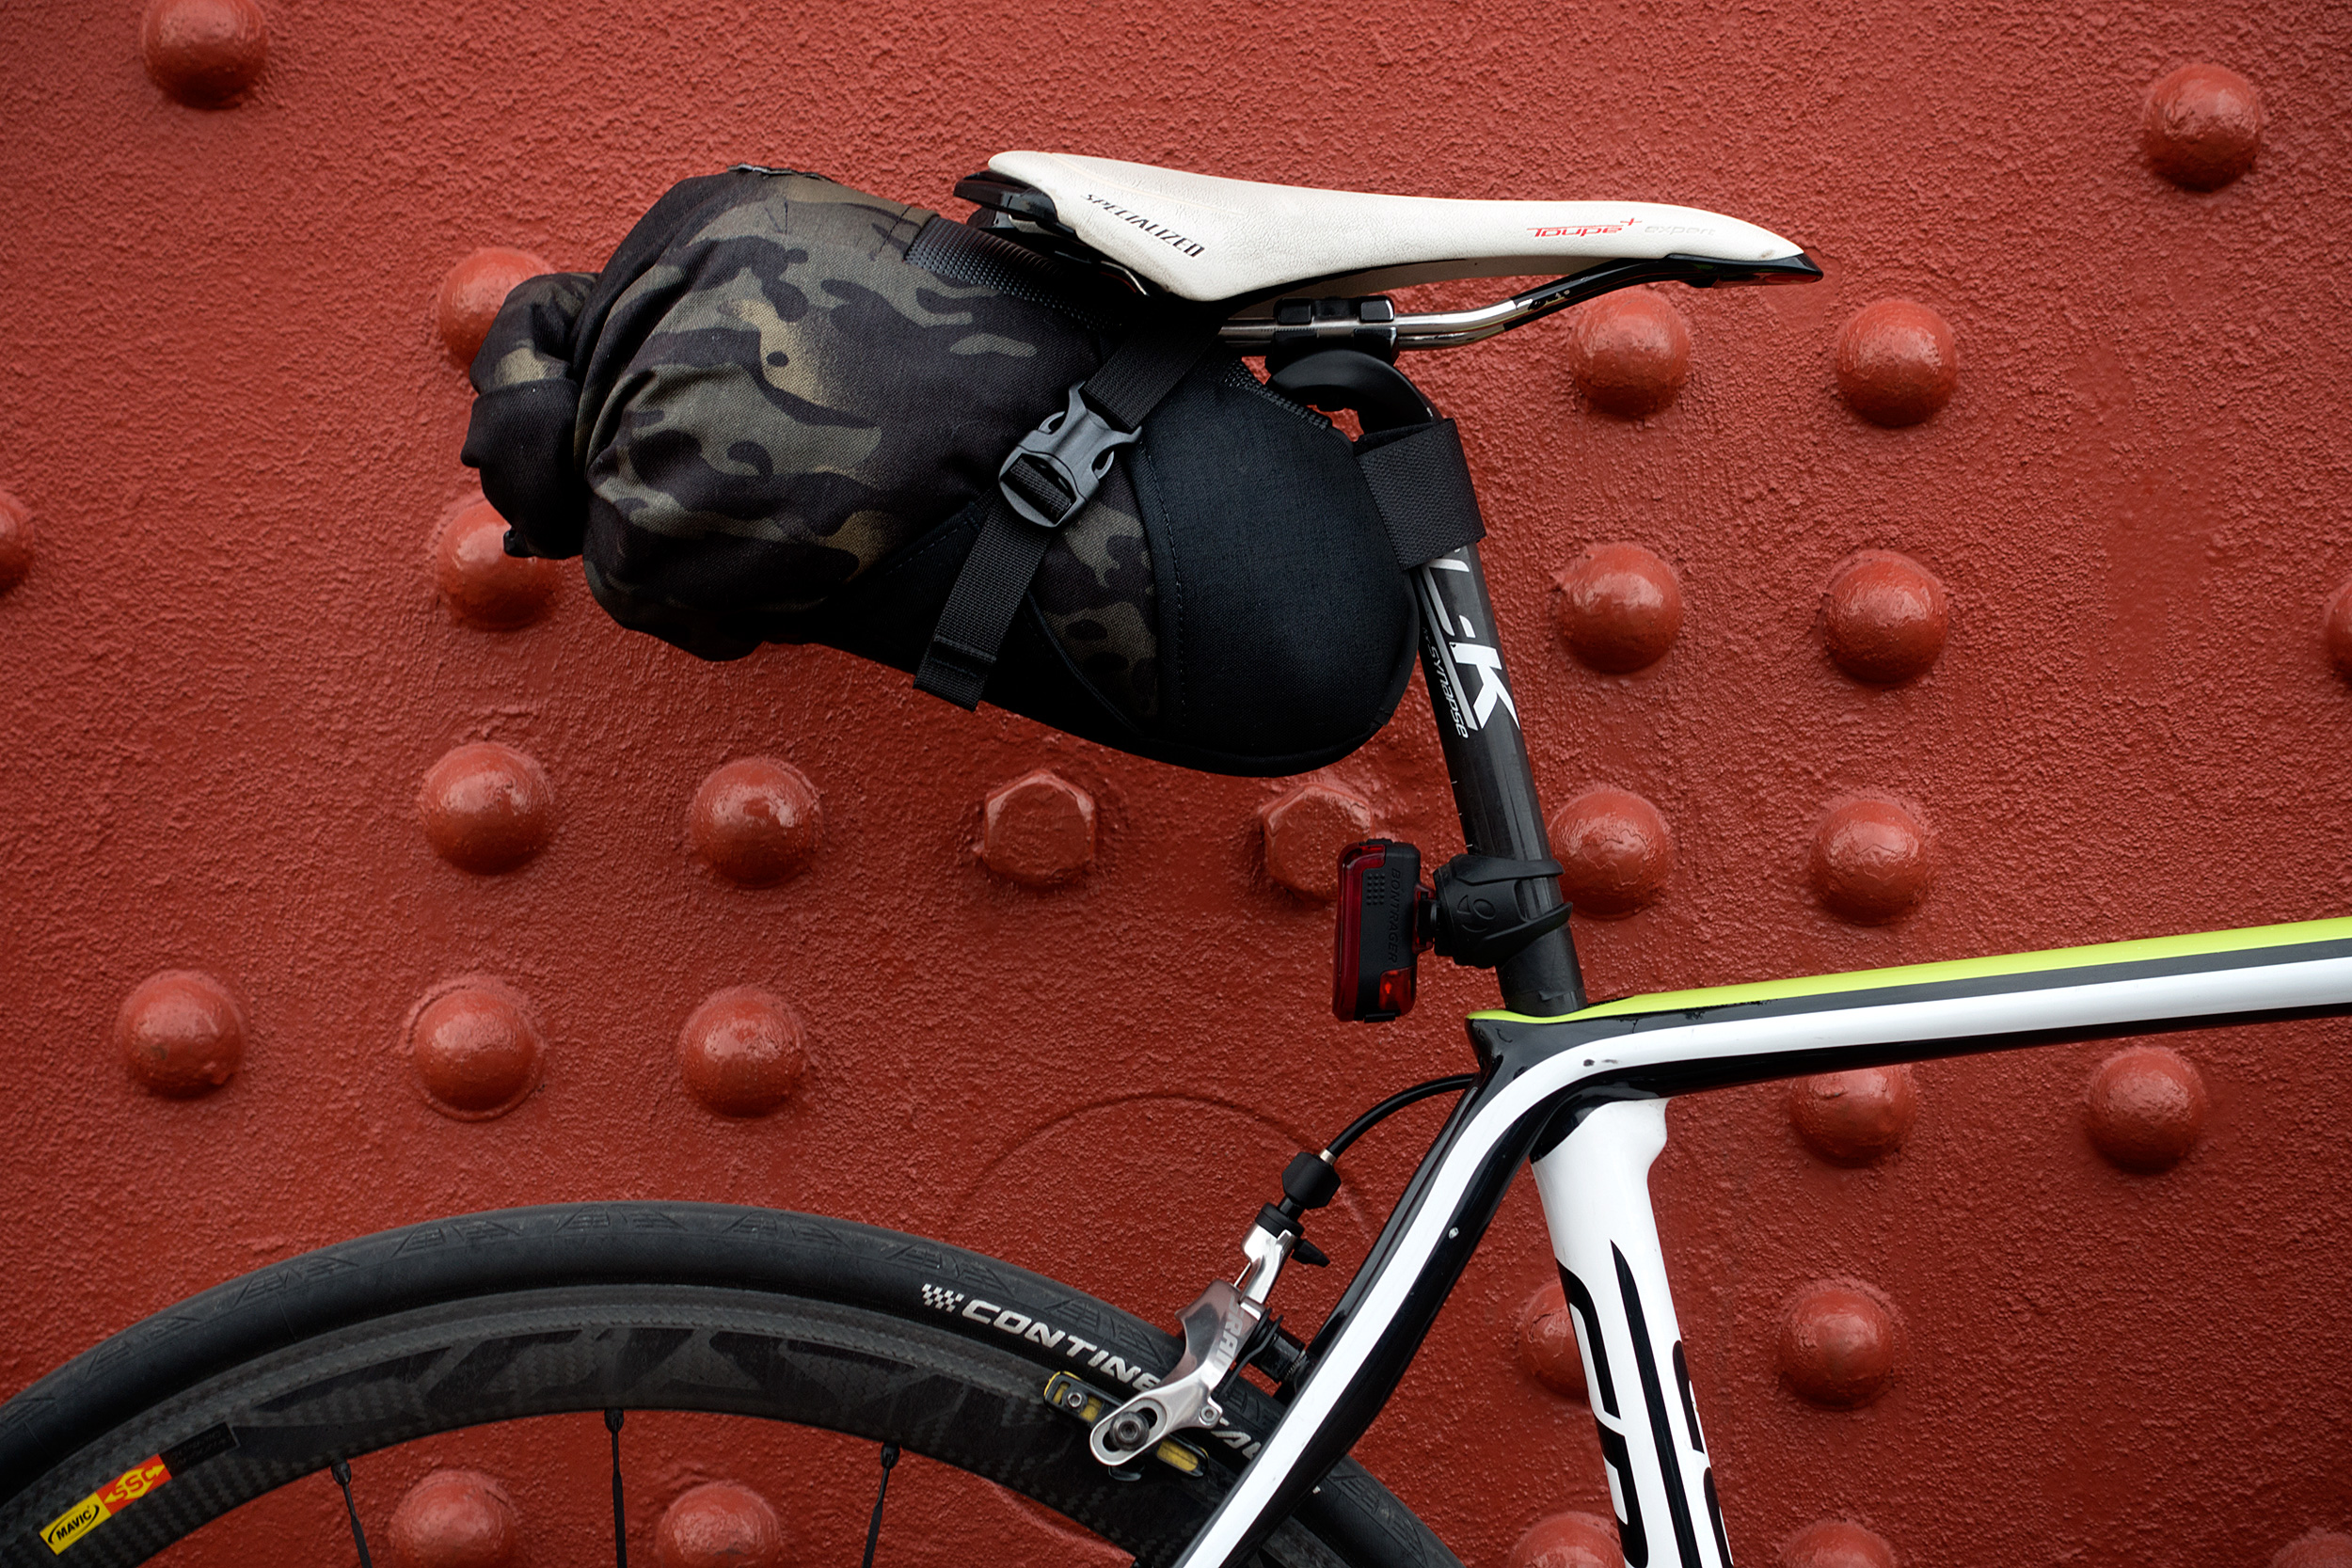 The Porcelain Rocket Charlene seat bag bring gear swallowing goodness to your bike. Photo: Jim Merithew/Element.ly